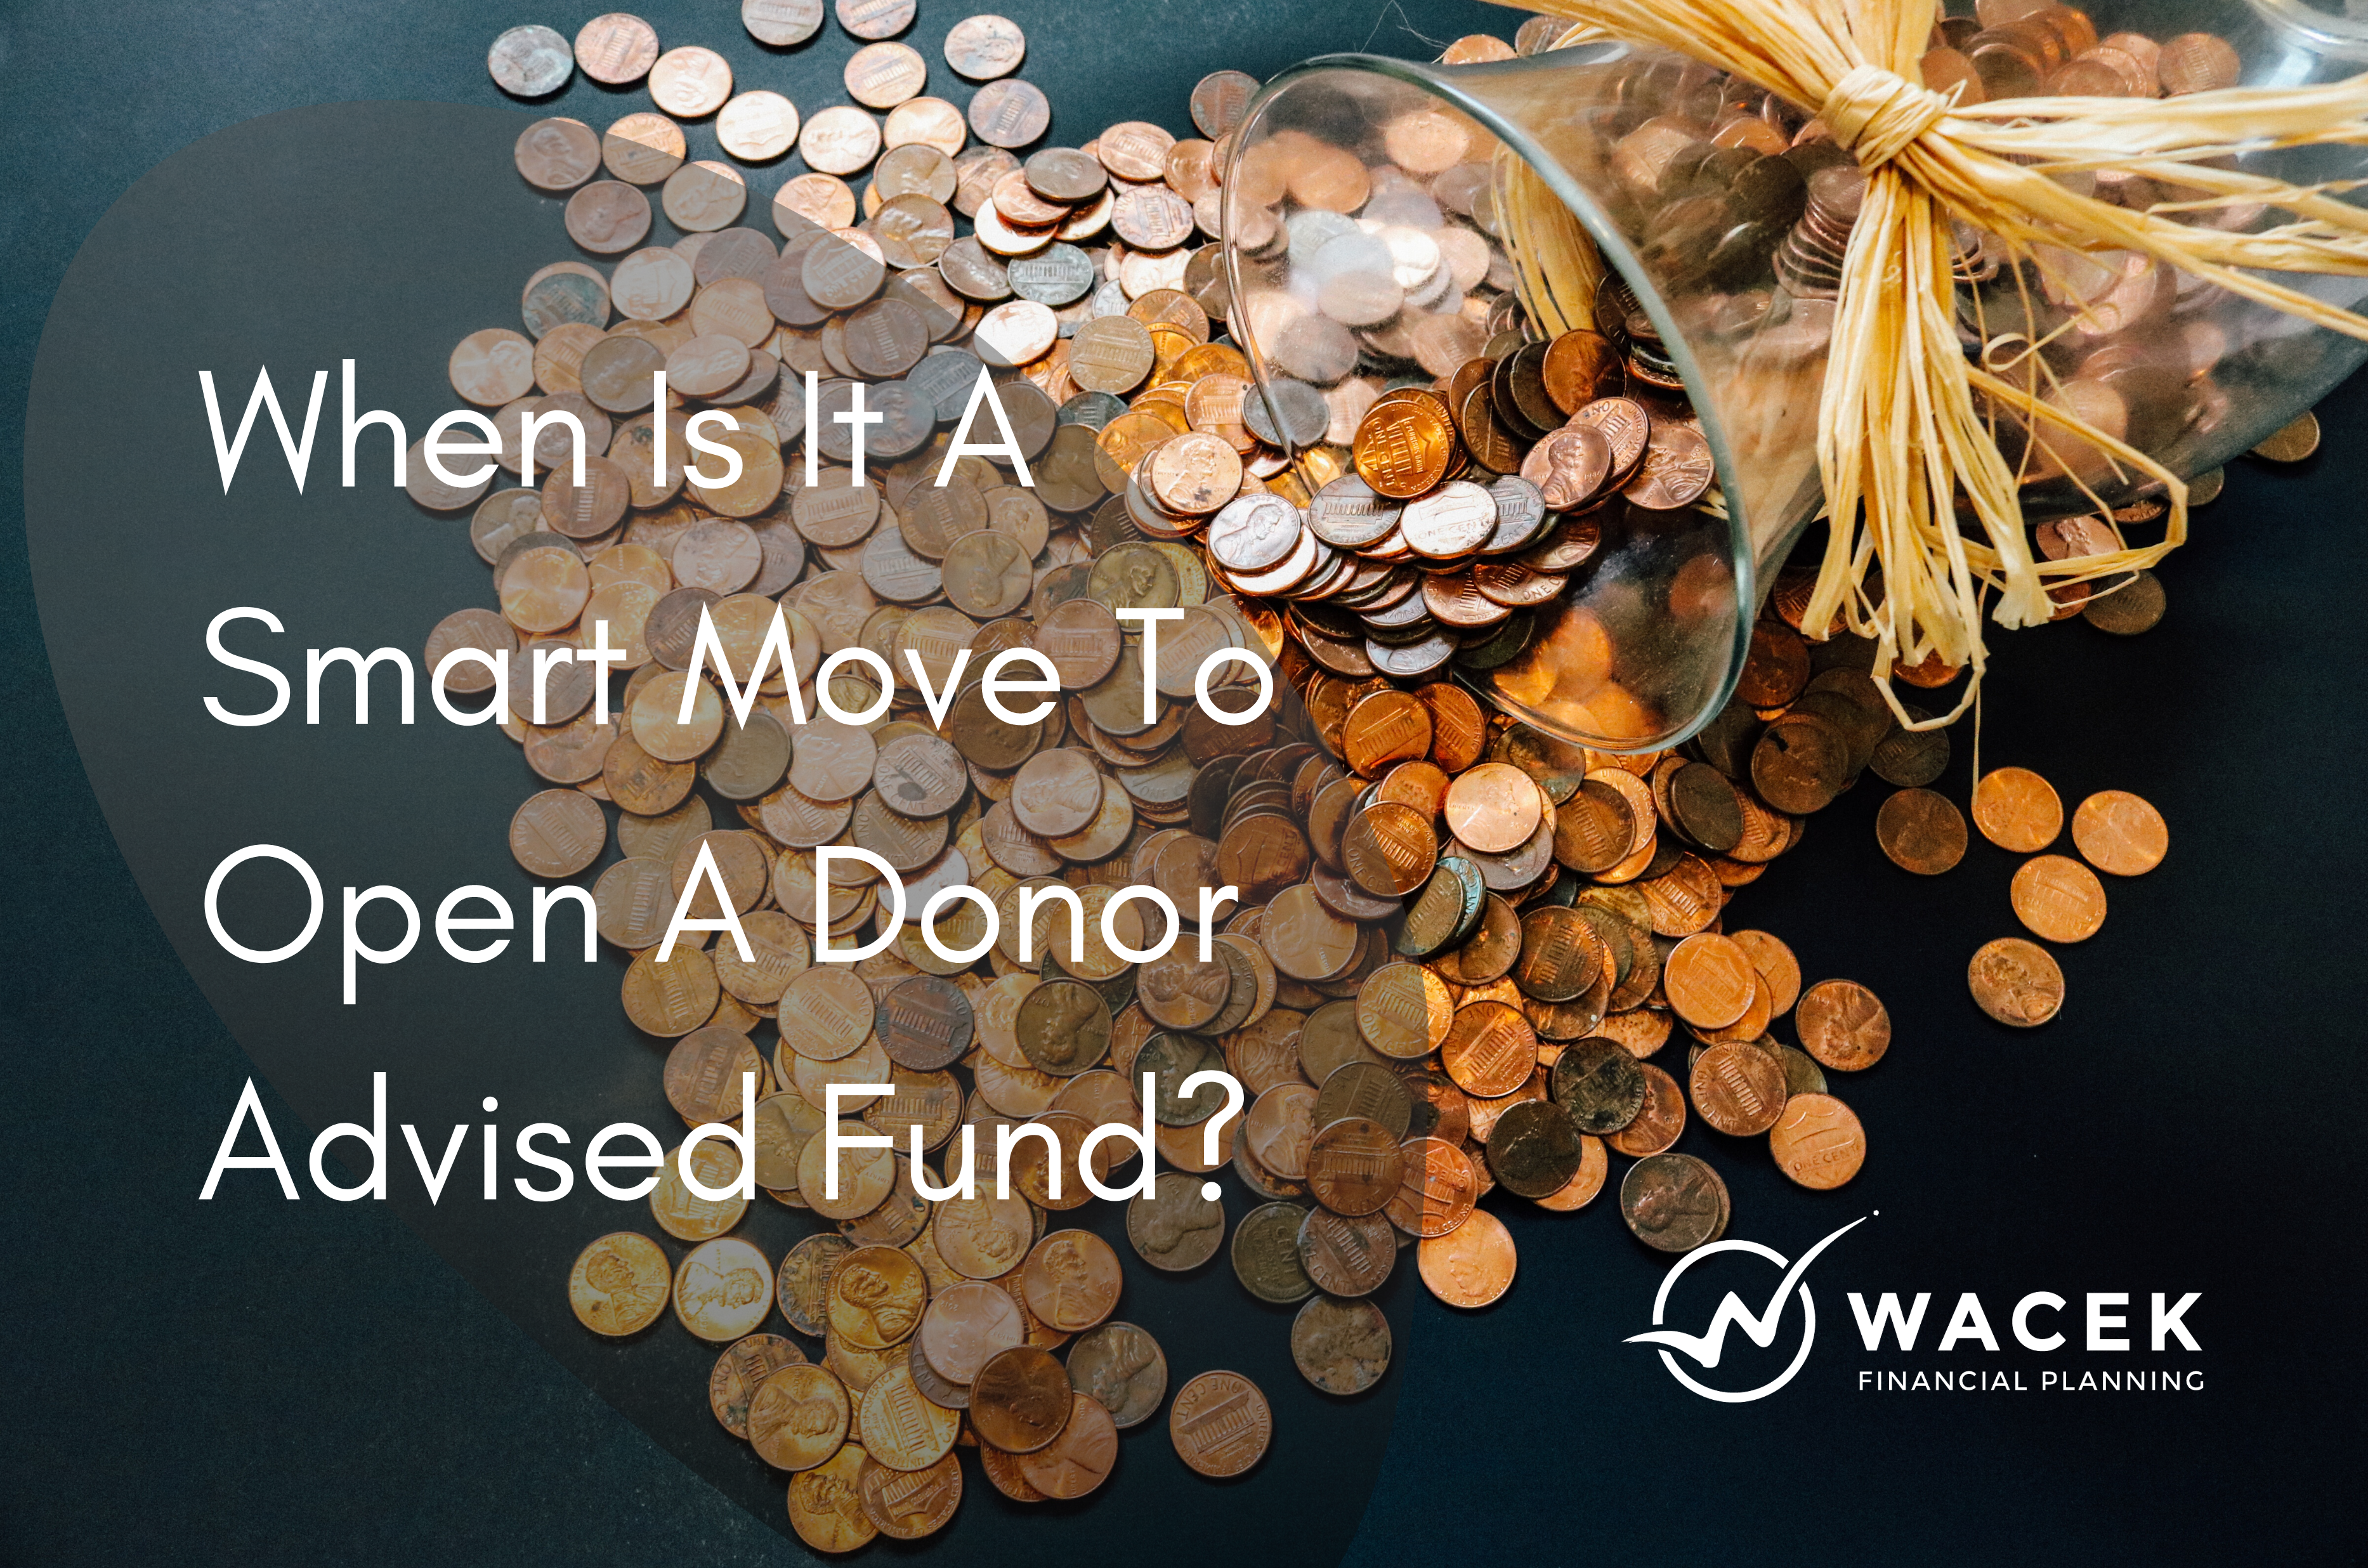 When Is It A Smart Move To Open A Donor Advised Fund? Thumbnail